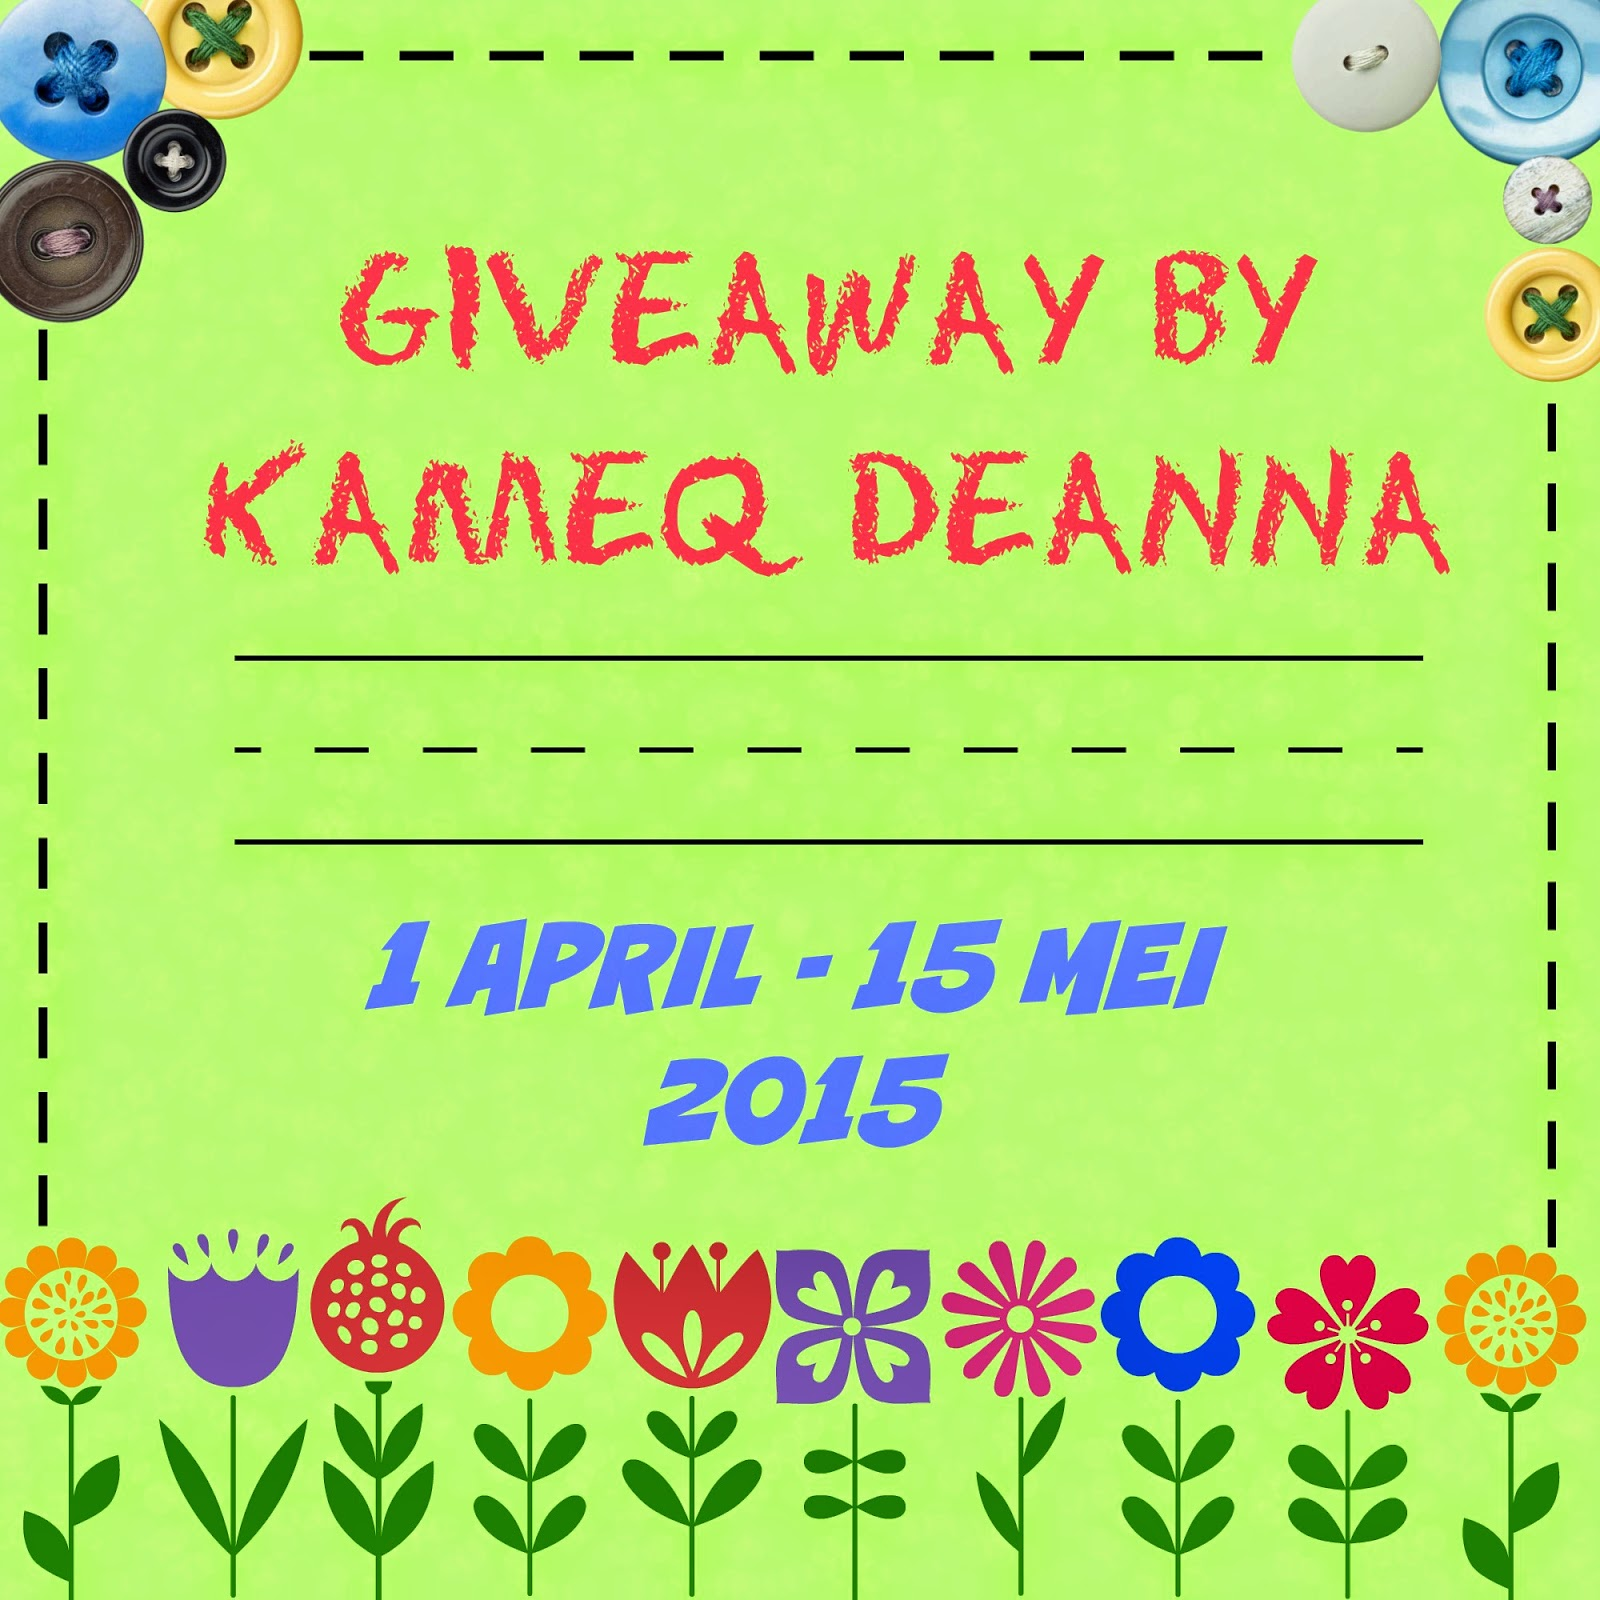 http://kameqdeanna.blogspot.com/2015/04/giveaway-by-kameq-deanna.html?showComment=1427857972905#c628691988525403325